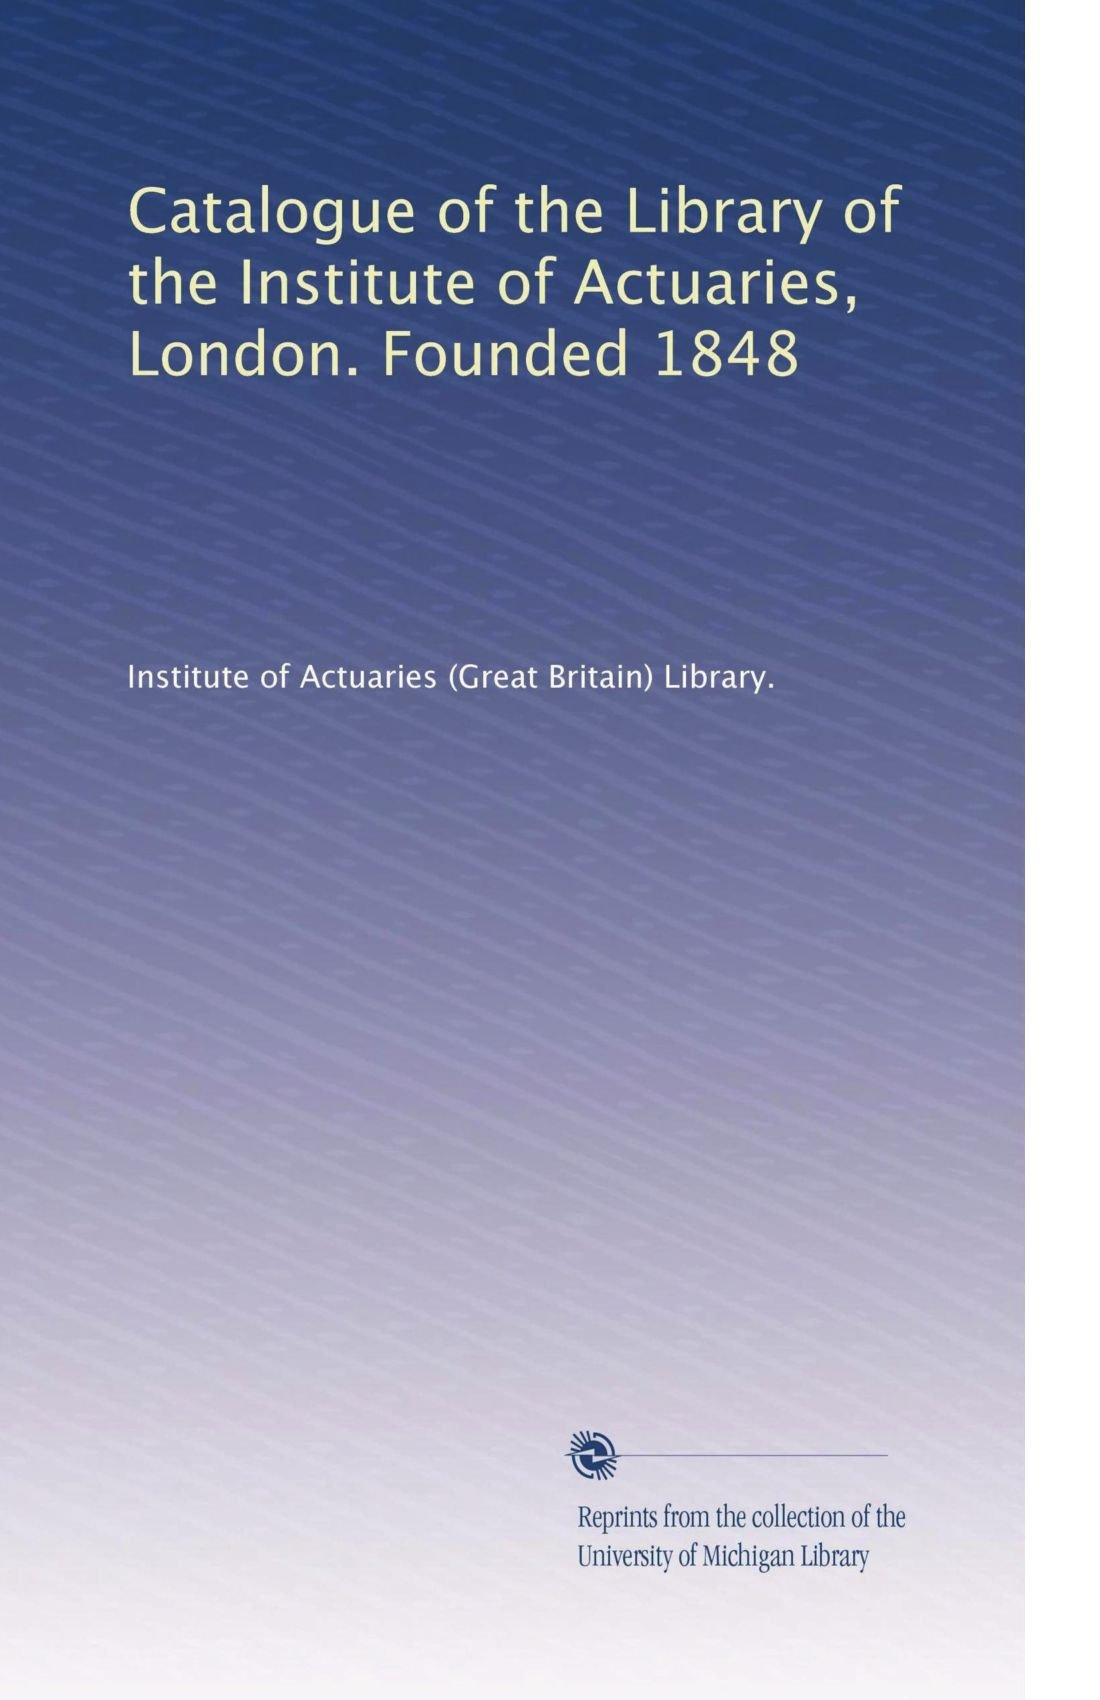 Download Catalogue of the Library of the Institute of Actuaries, London. Founded 1848 PDF